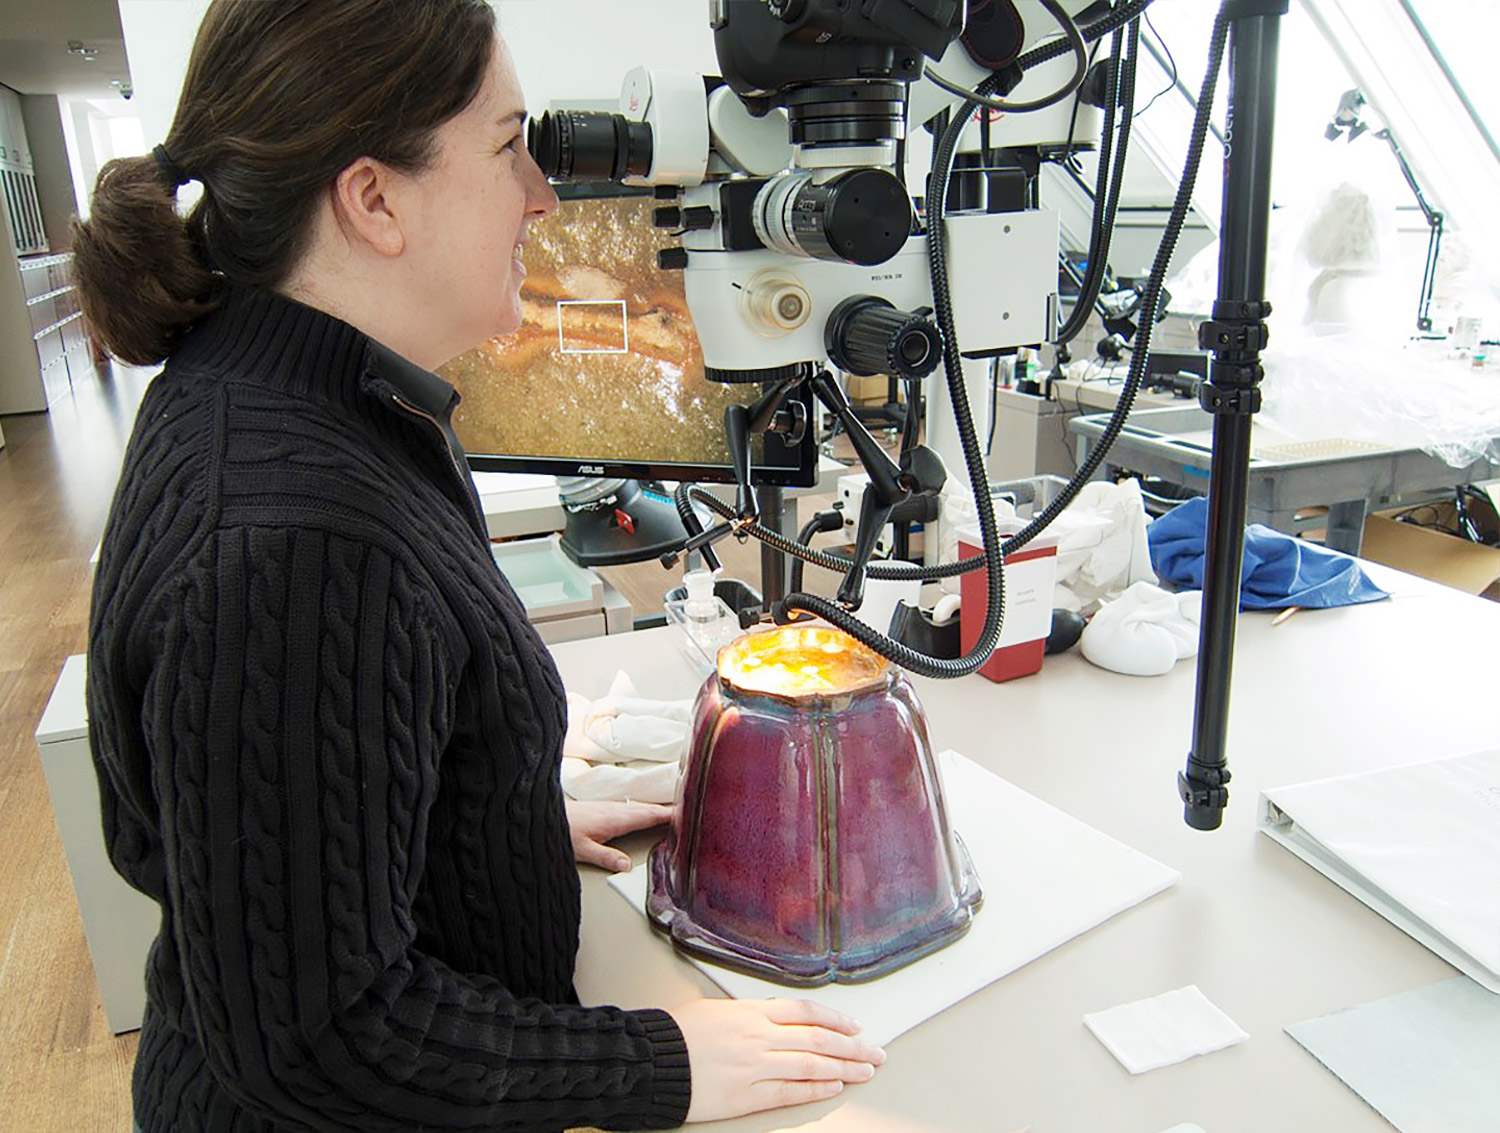 Costello examines a numbered Jun vessel under a microscope.